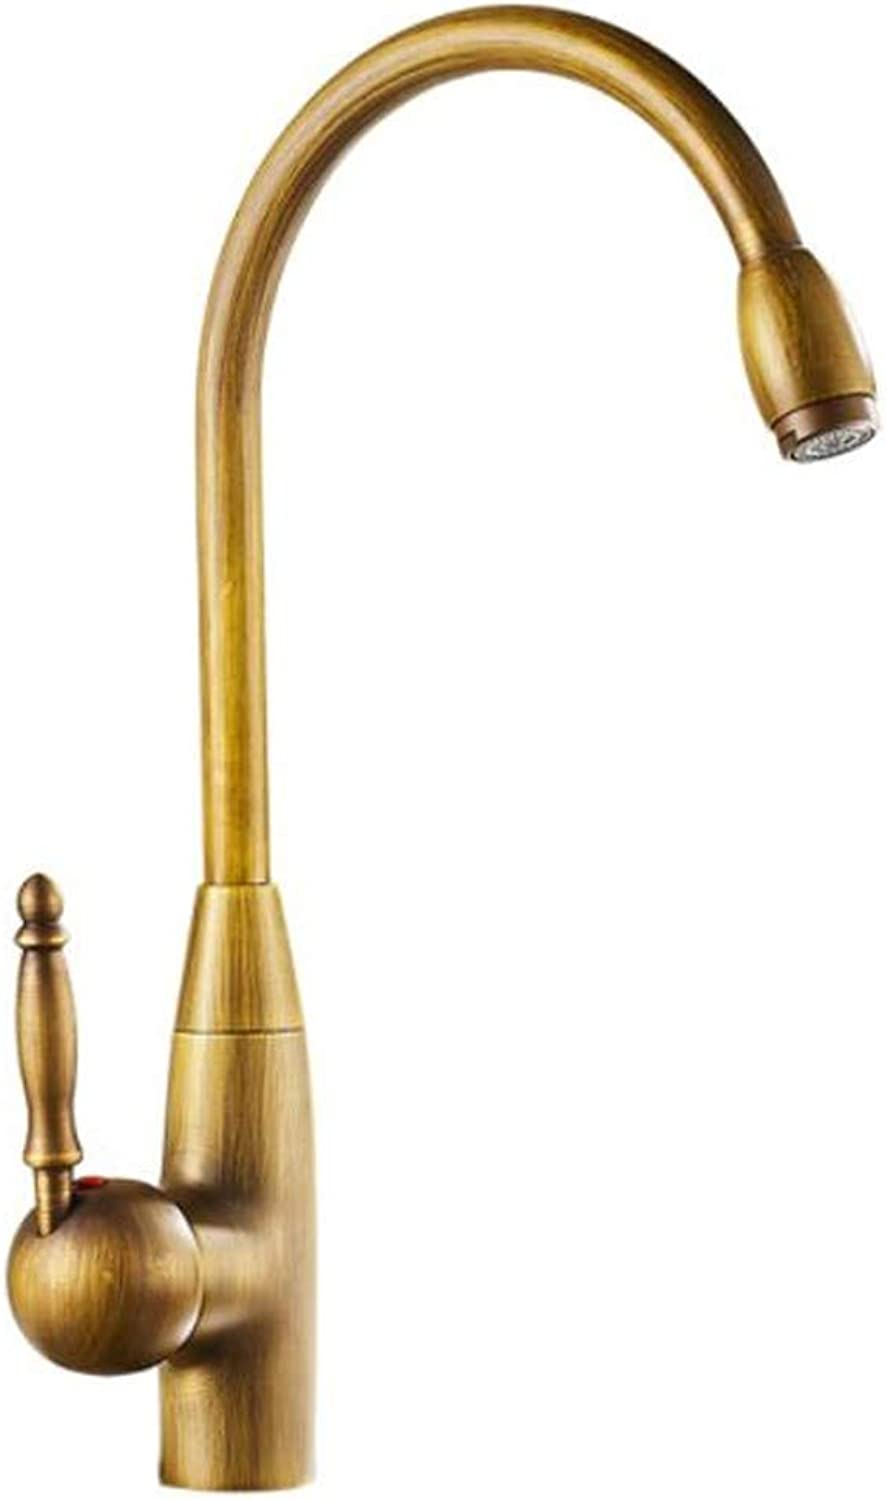 Taps Mixer?Swivel?Faucet Sink Kitchen Hot and Cold Faucet Antique Retro Faucet Sink Faucet Basin Faucet Can Be redated